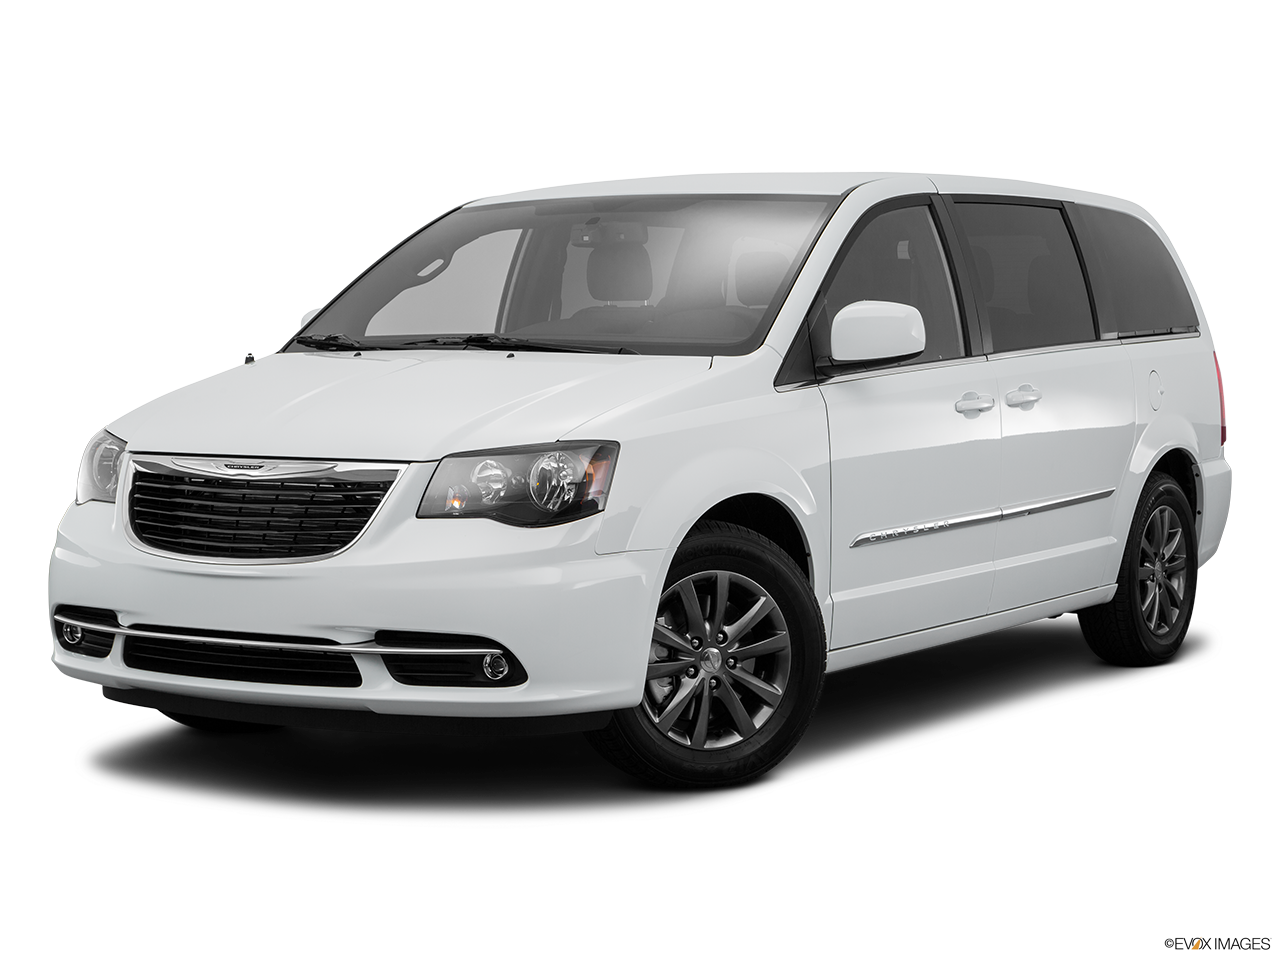 Test Drive A 2016 Chrysler Town and Country at Carl Burger Dodge Chrysler Jeep Ram World in La Mesa